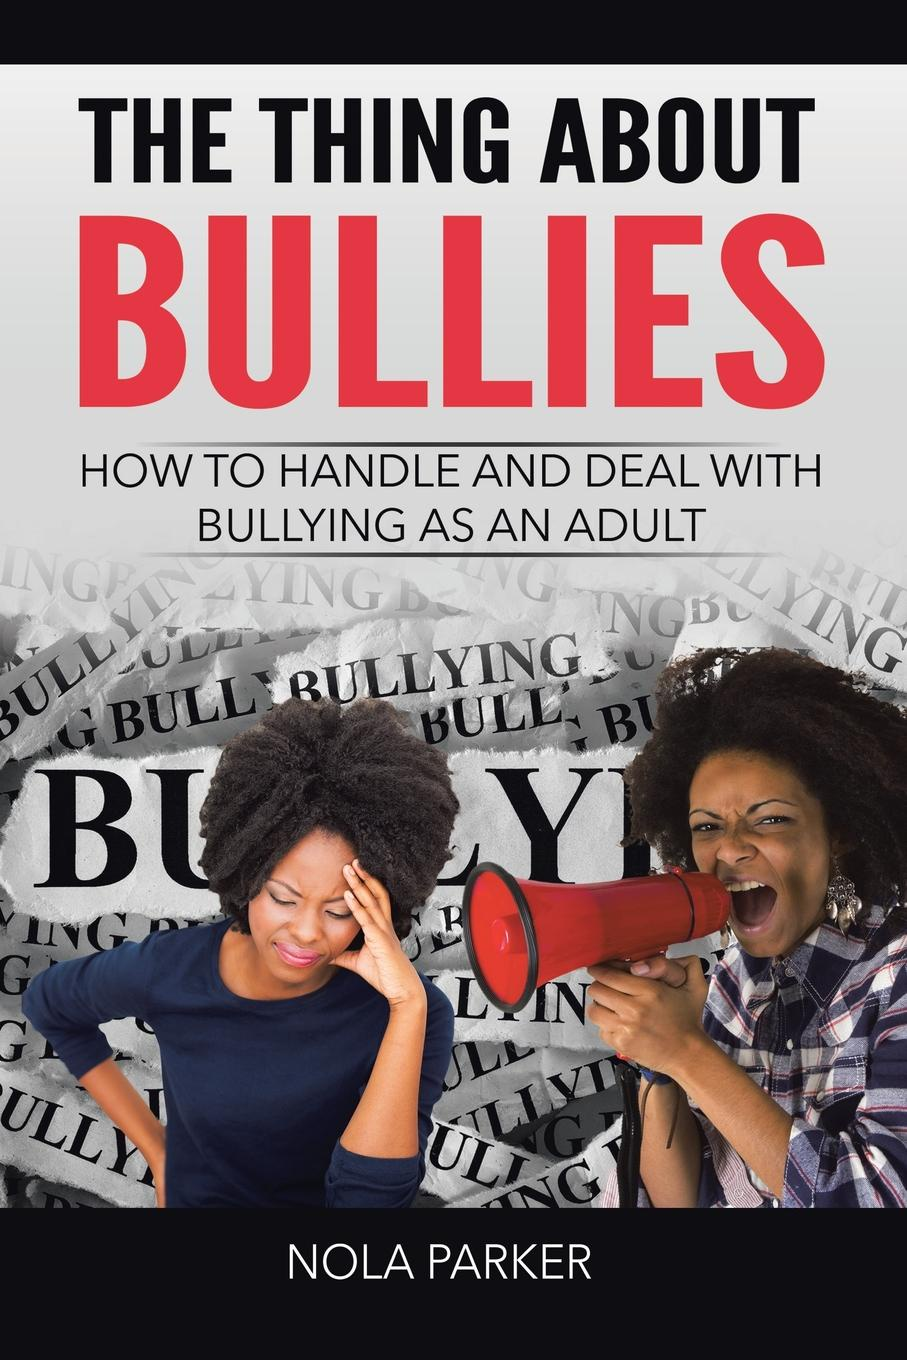 Nola Parker The Thing About Bullies. How to Handle and Deal with Bullying as an Adult stephen cosgrove pickles and the p flock bullies